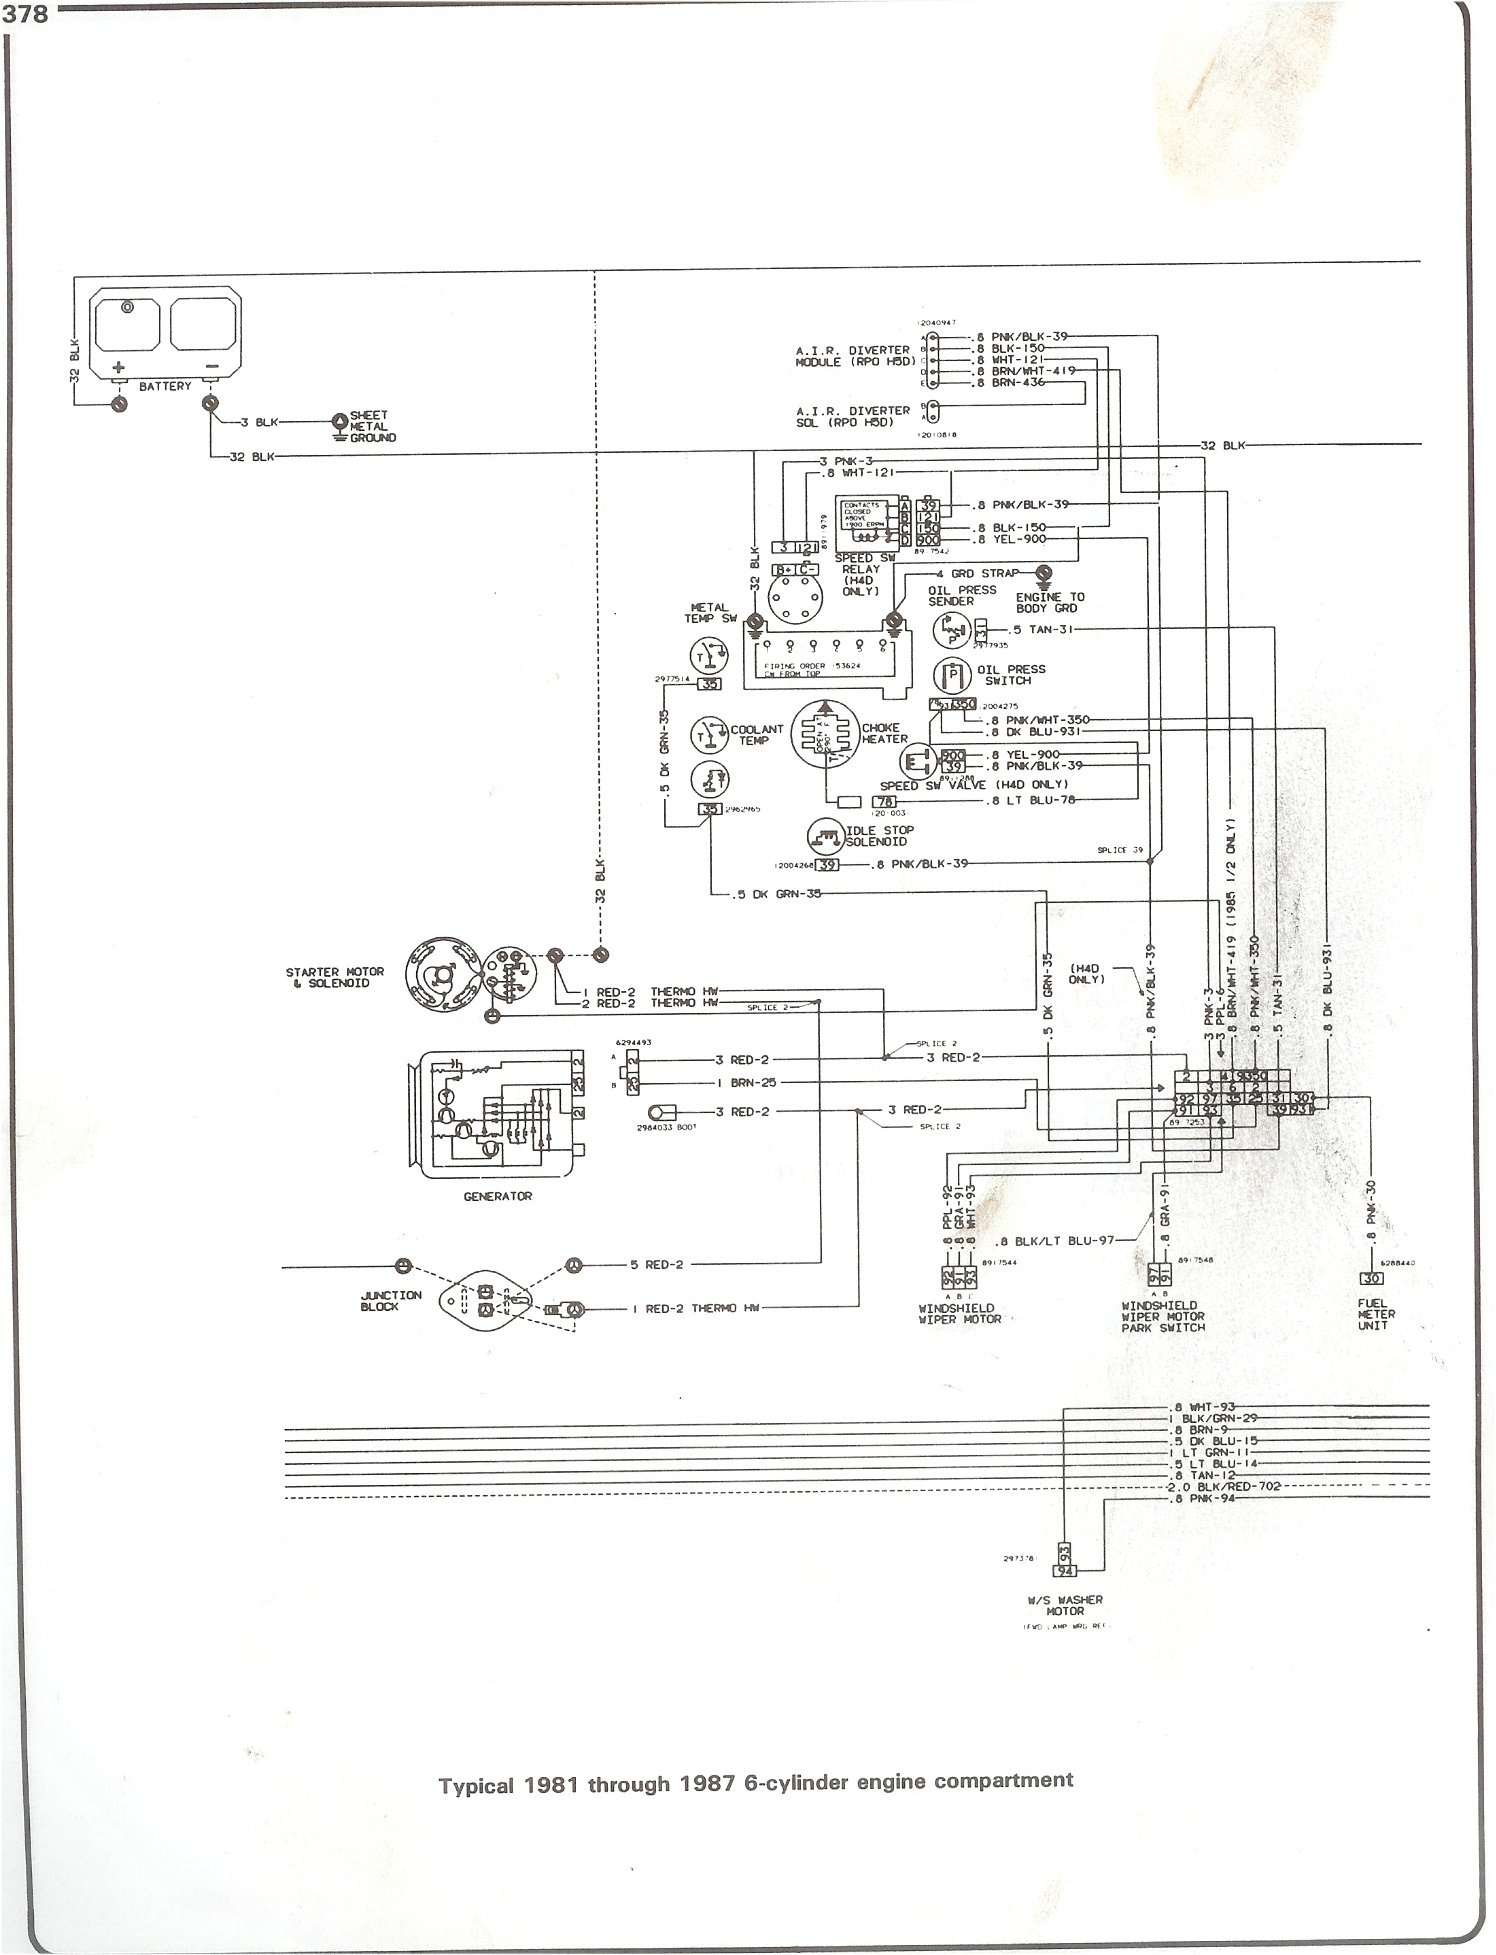 complete 73 87 wiring diagrams rh forum 73 87chevytrucks com Chevy Express 2500 Wiring Diagram Chevy Express 2500 Wiring Diagram